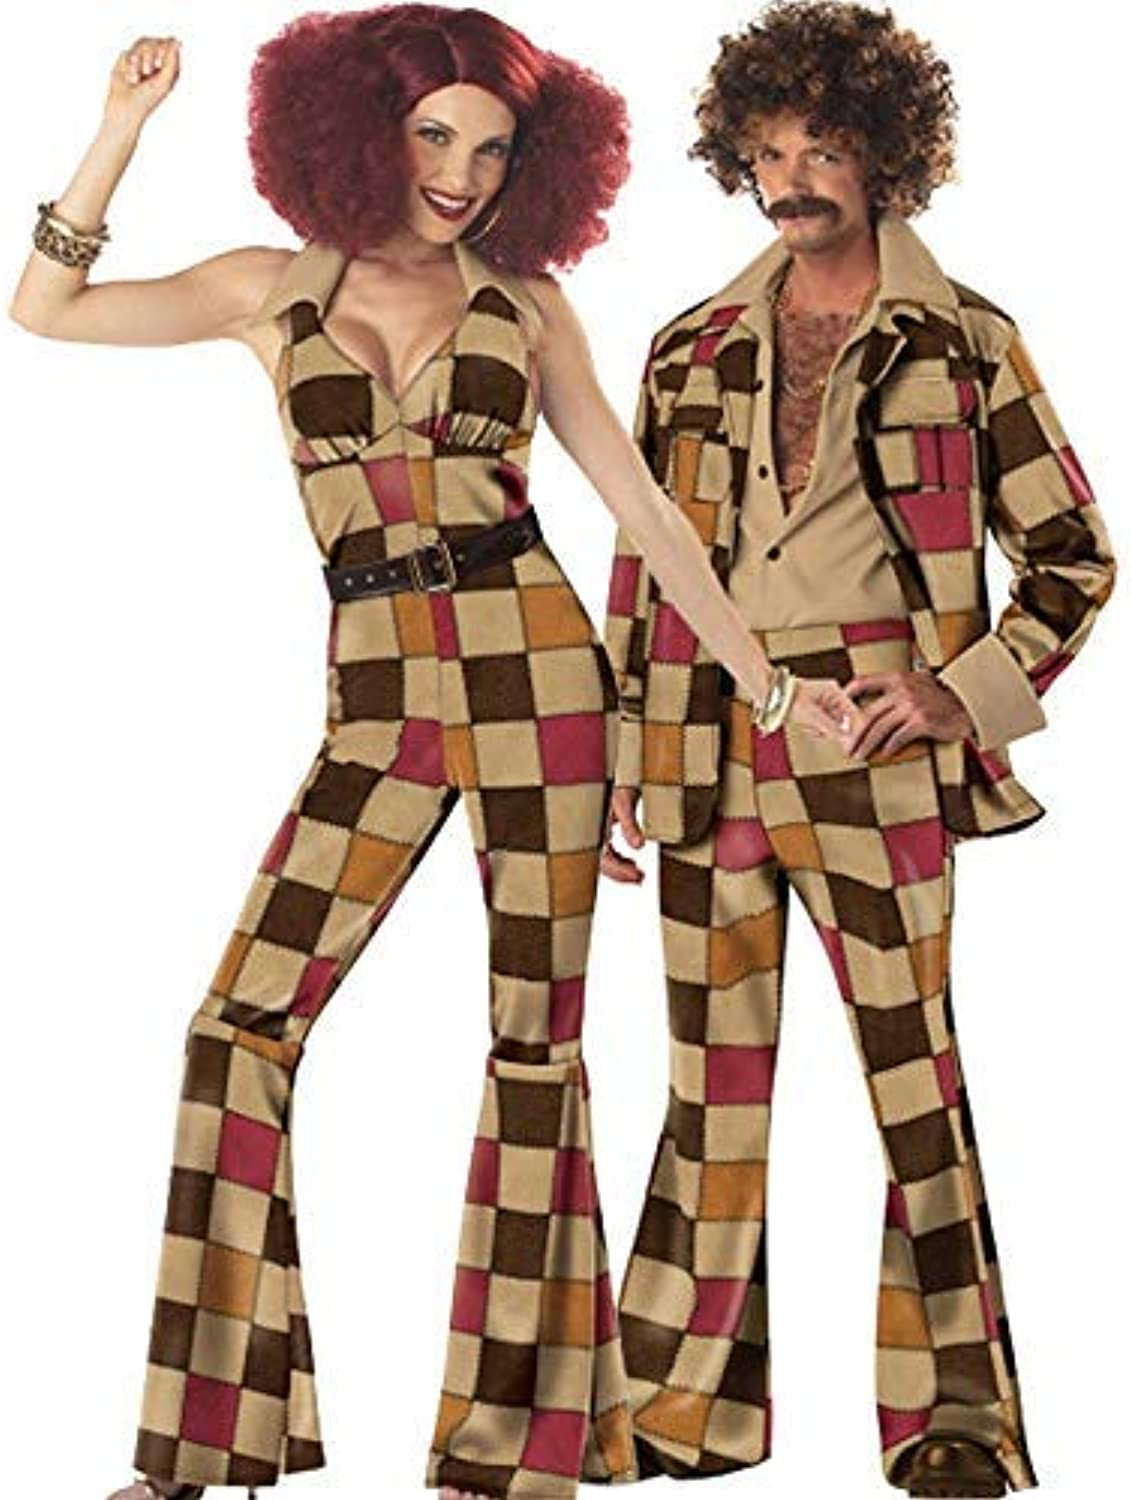 Cosplay costume,SXXS Men and women 70's retro disco ball queen costume role playing Halloween costume game uniform With a Unique Original Ring Fxxk Me